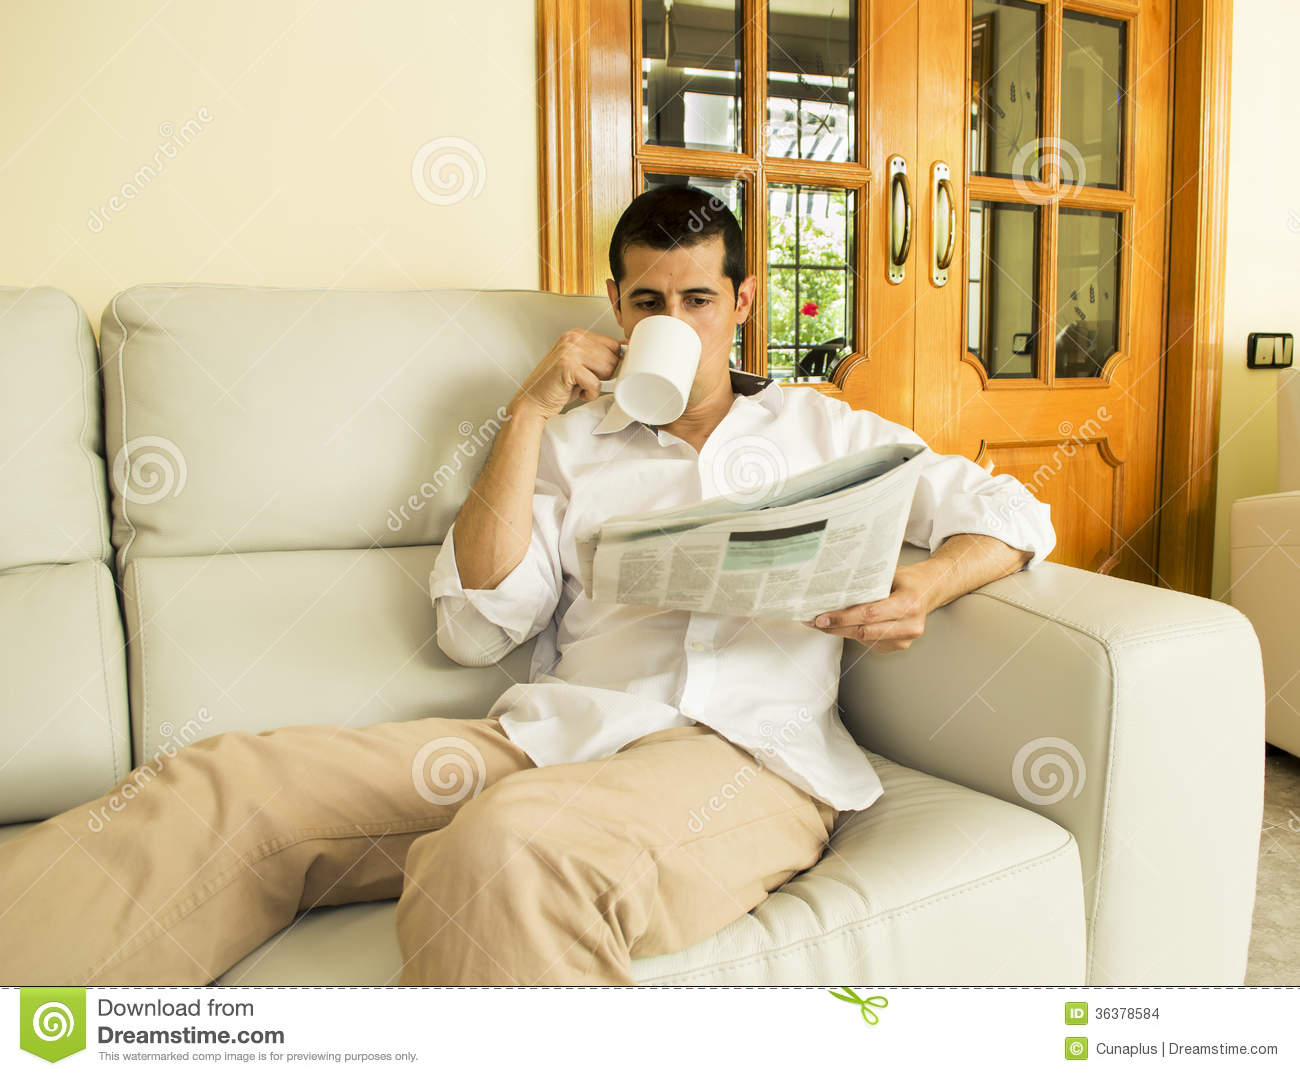 Man drinking coffee and reading newspaper on the sofa.